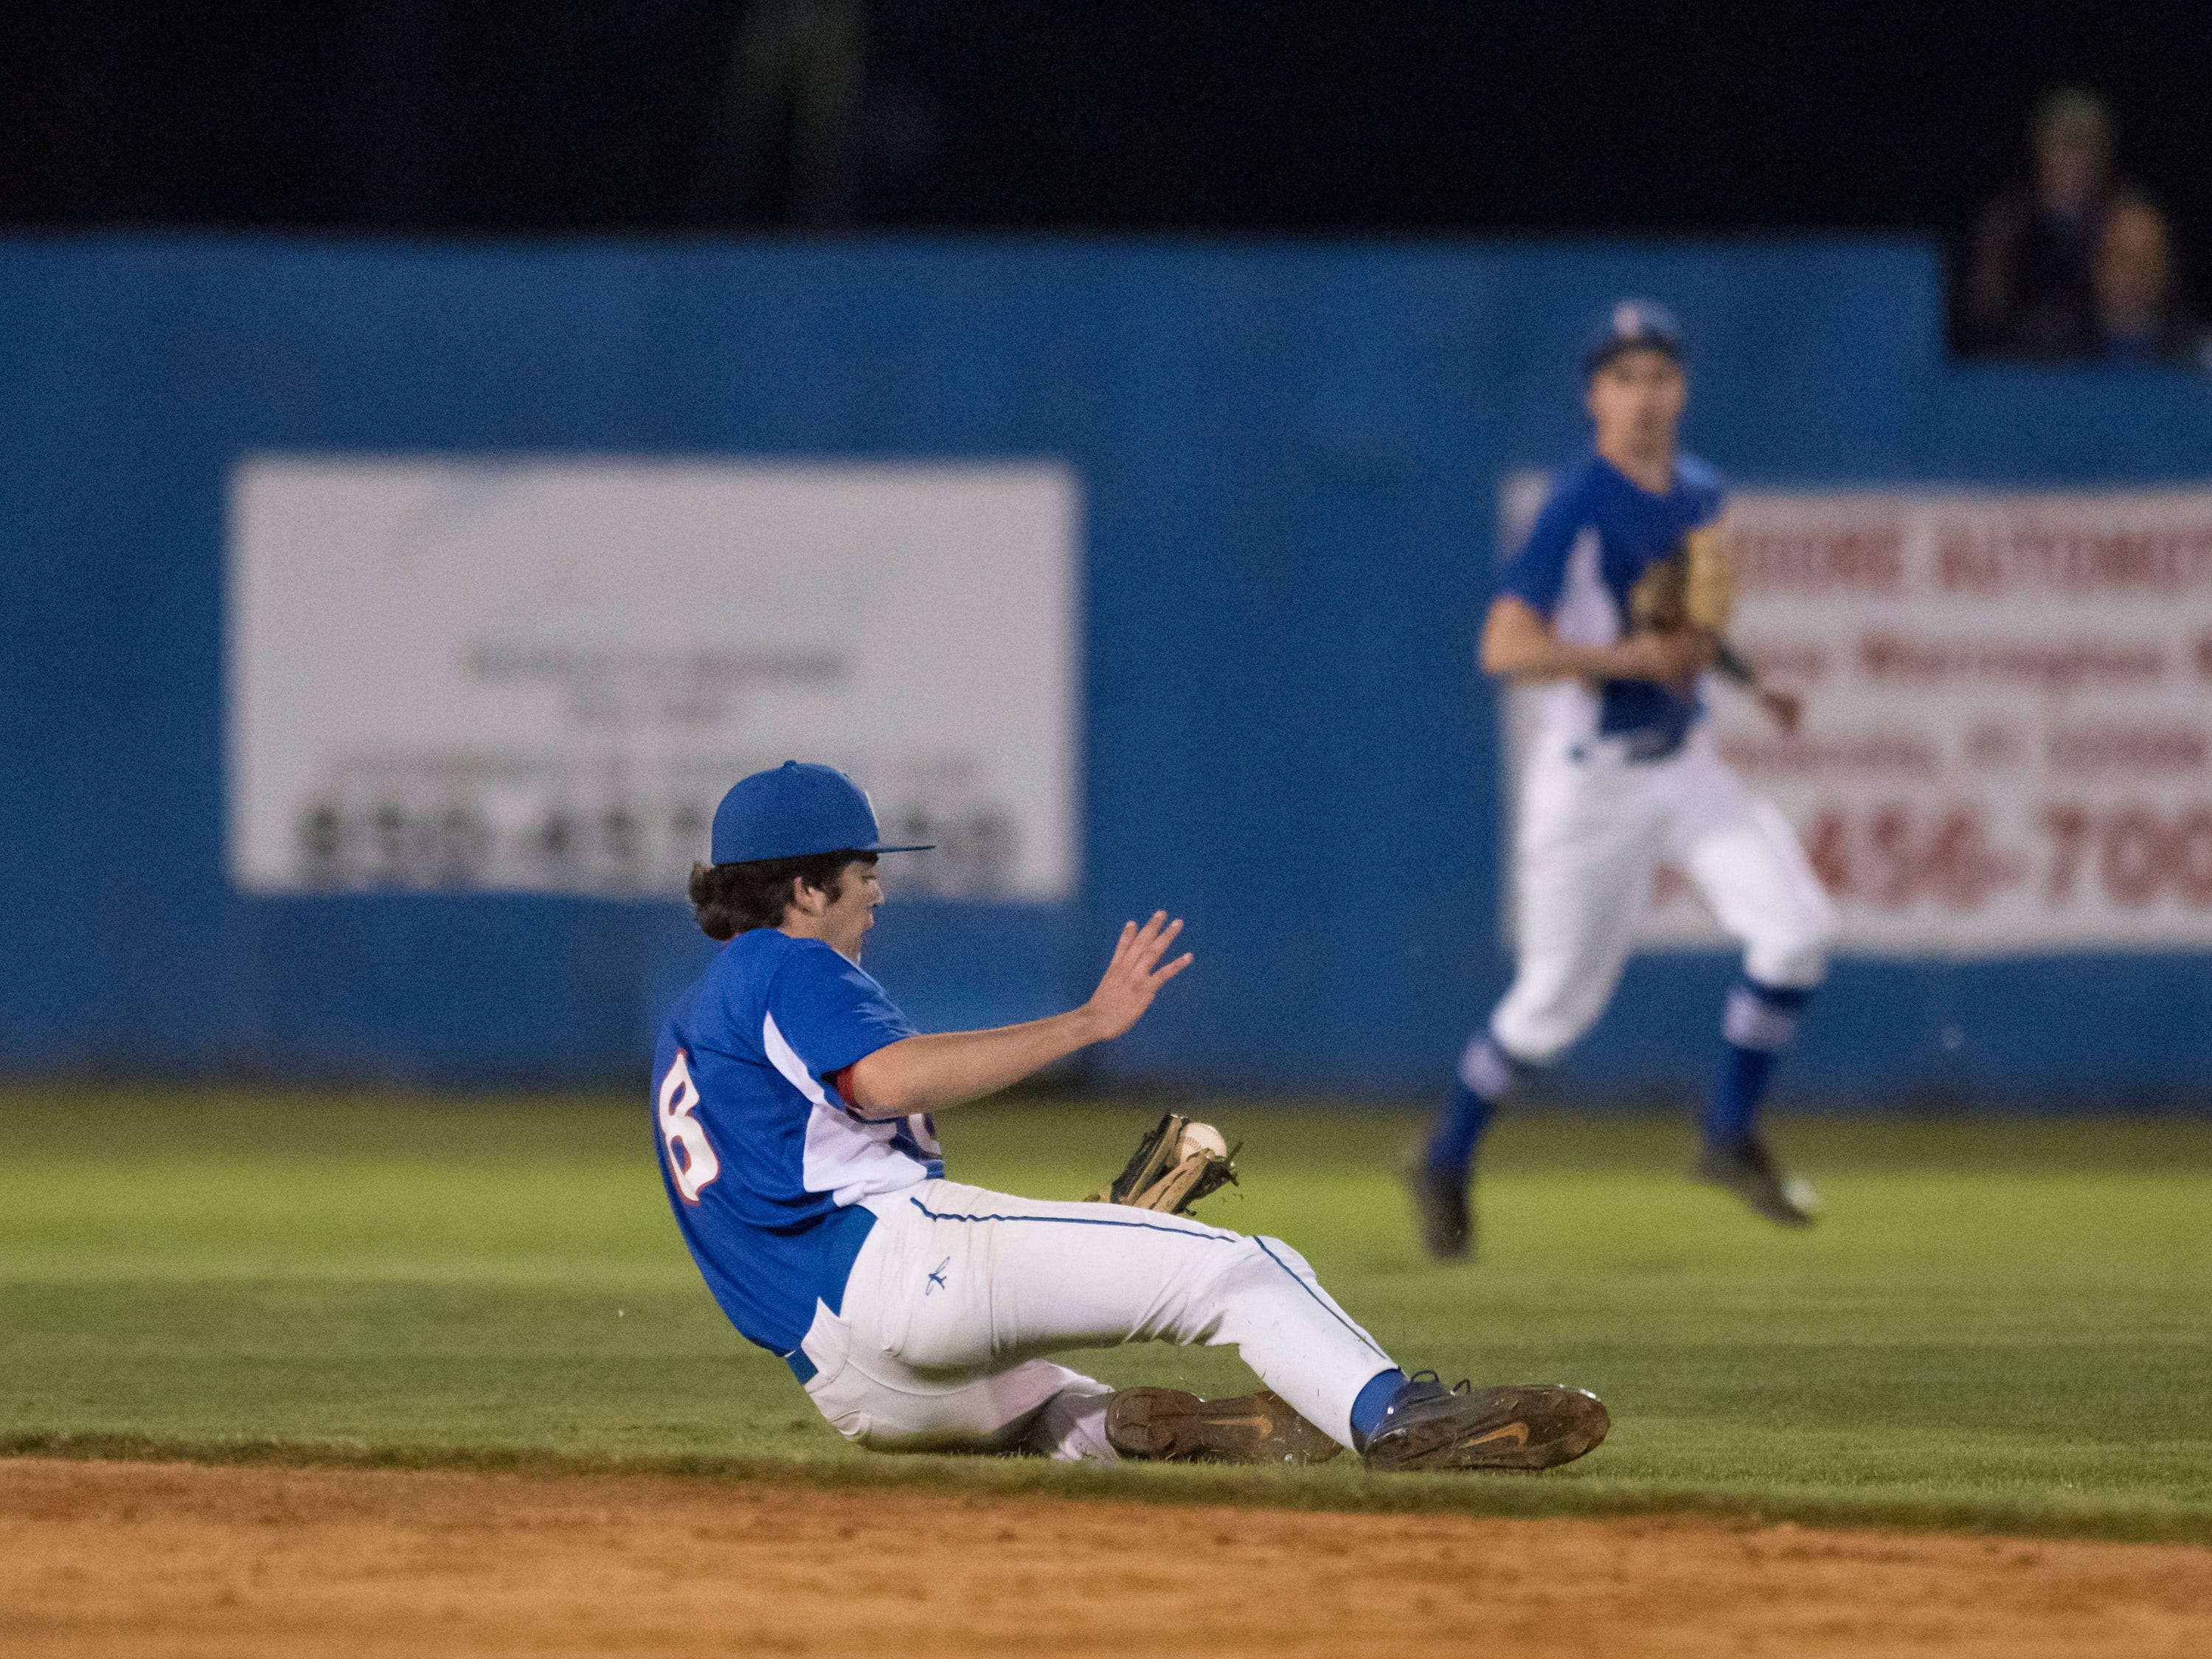 Sawyer Dibble (8) slides to catch Chase Gullatt (5)'s pop up for the third out in the bottome of the 2nd inning during the Christian Educational Consortium vs Pine Forest baseball game at Pine Forest High School in Pensacola on Wednesday, April 3, 2019.